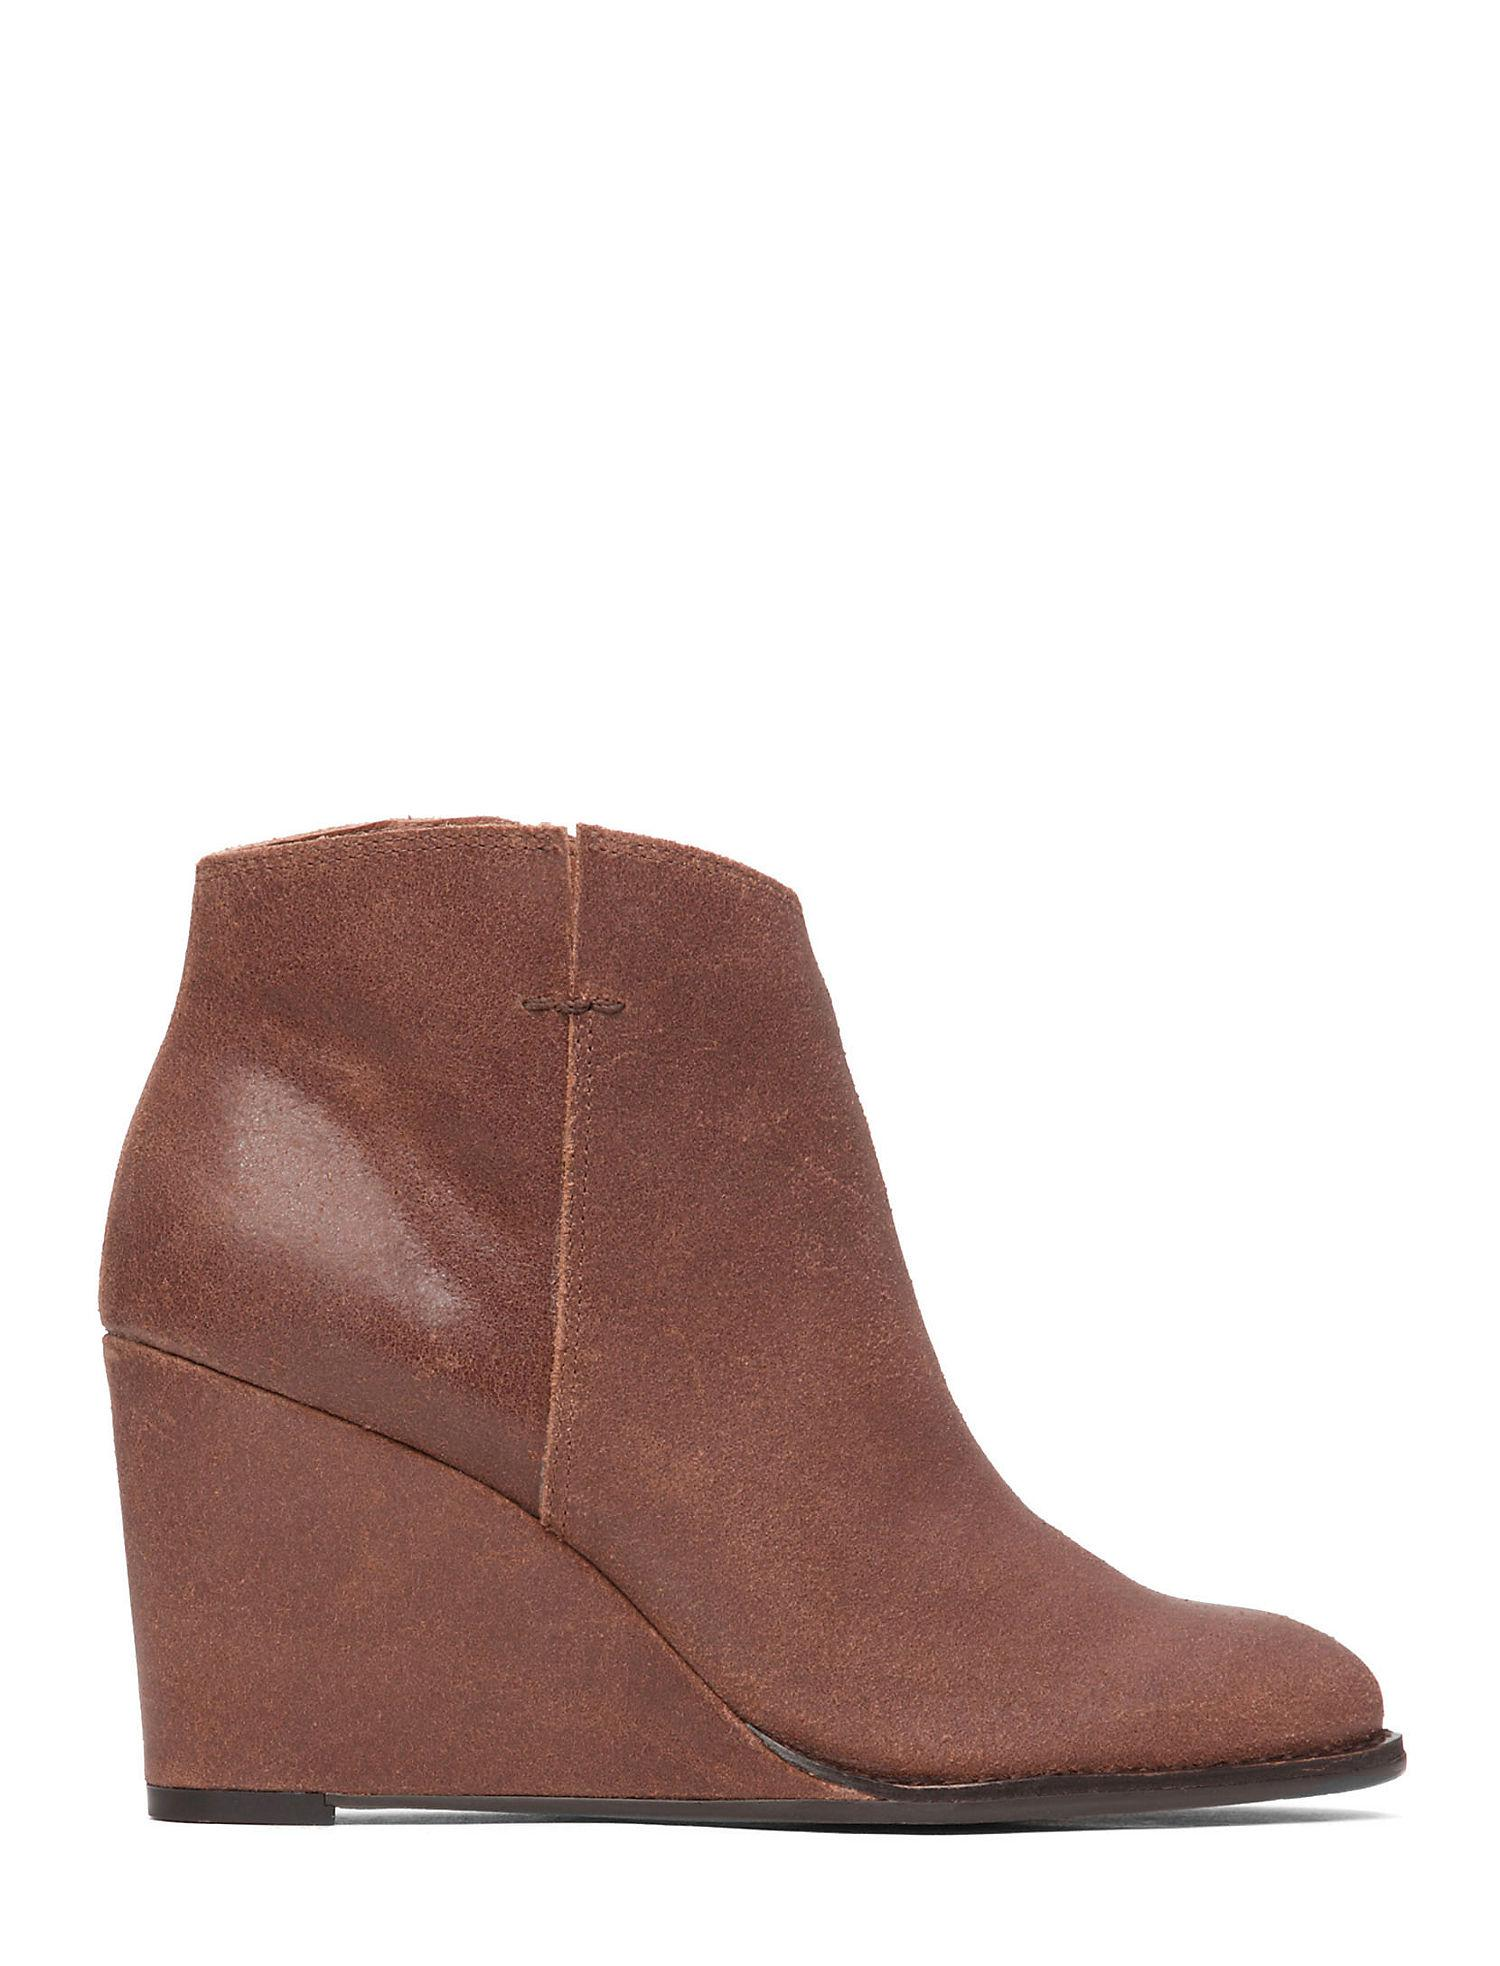 321c745dce1b Lyst - Lucky Brand Validas Wedge Bootie in Brown